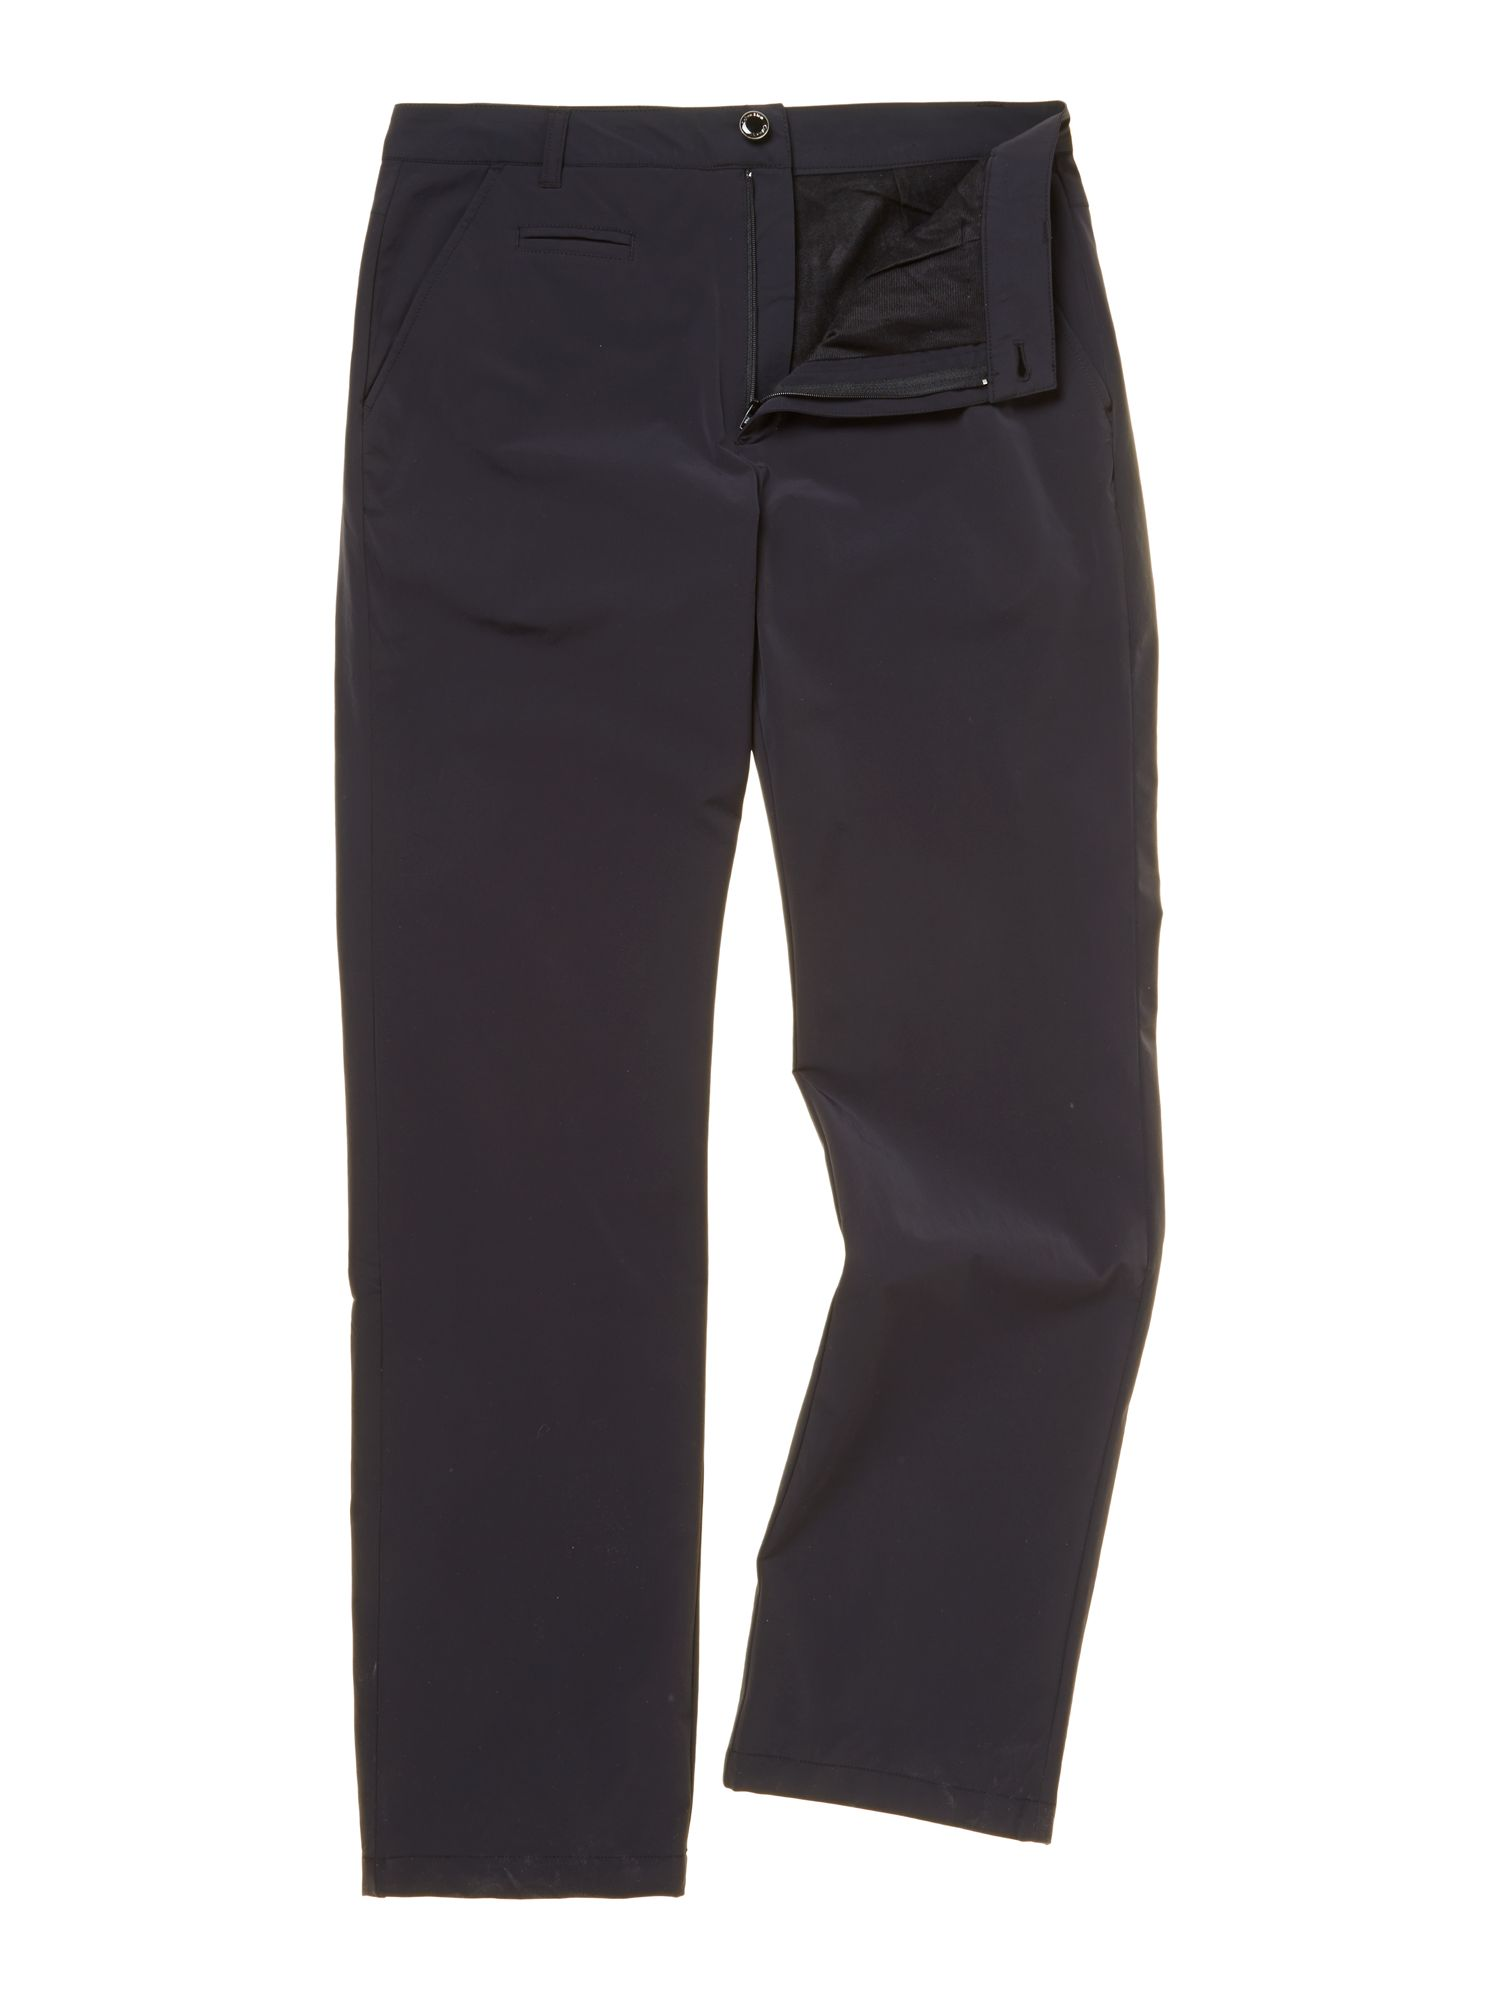 Tech 4 way stretch trouser